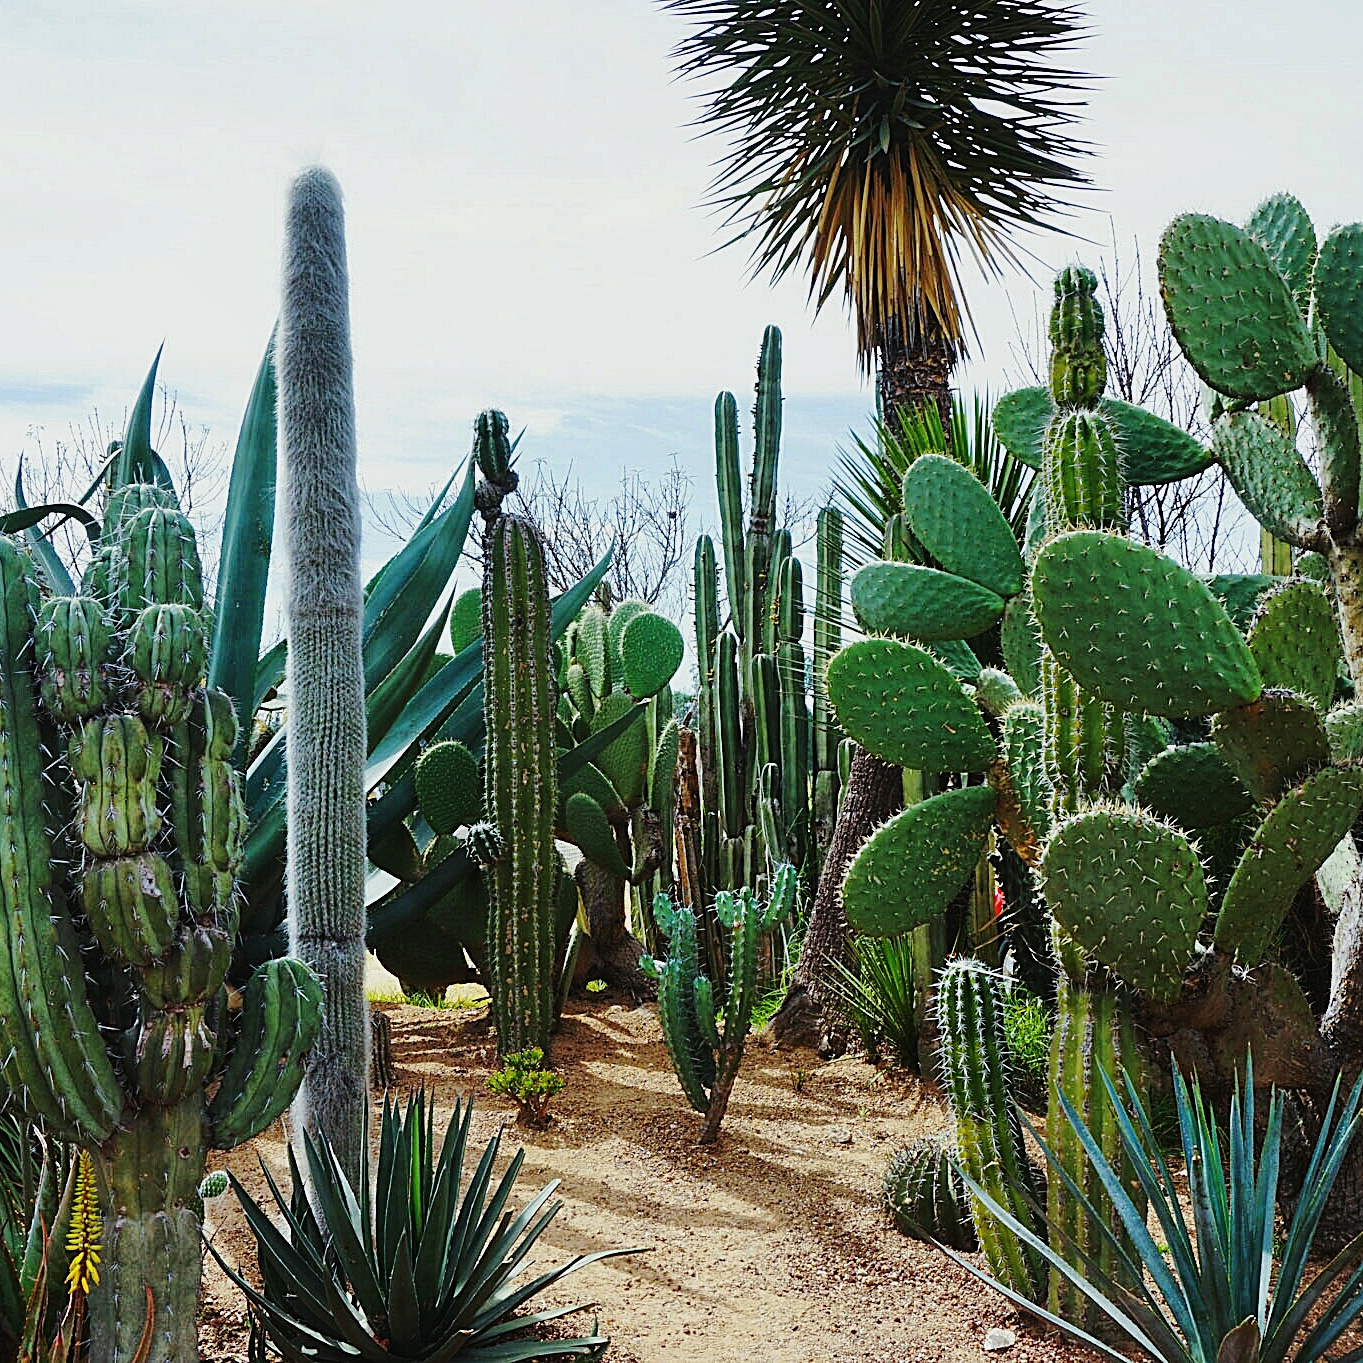 travel to mexico, cactus, turning point blog, mexico city, lifestyle, travel